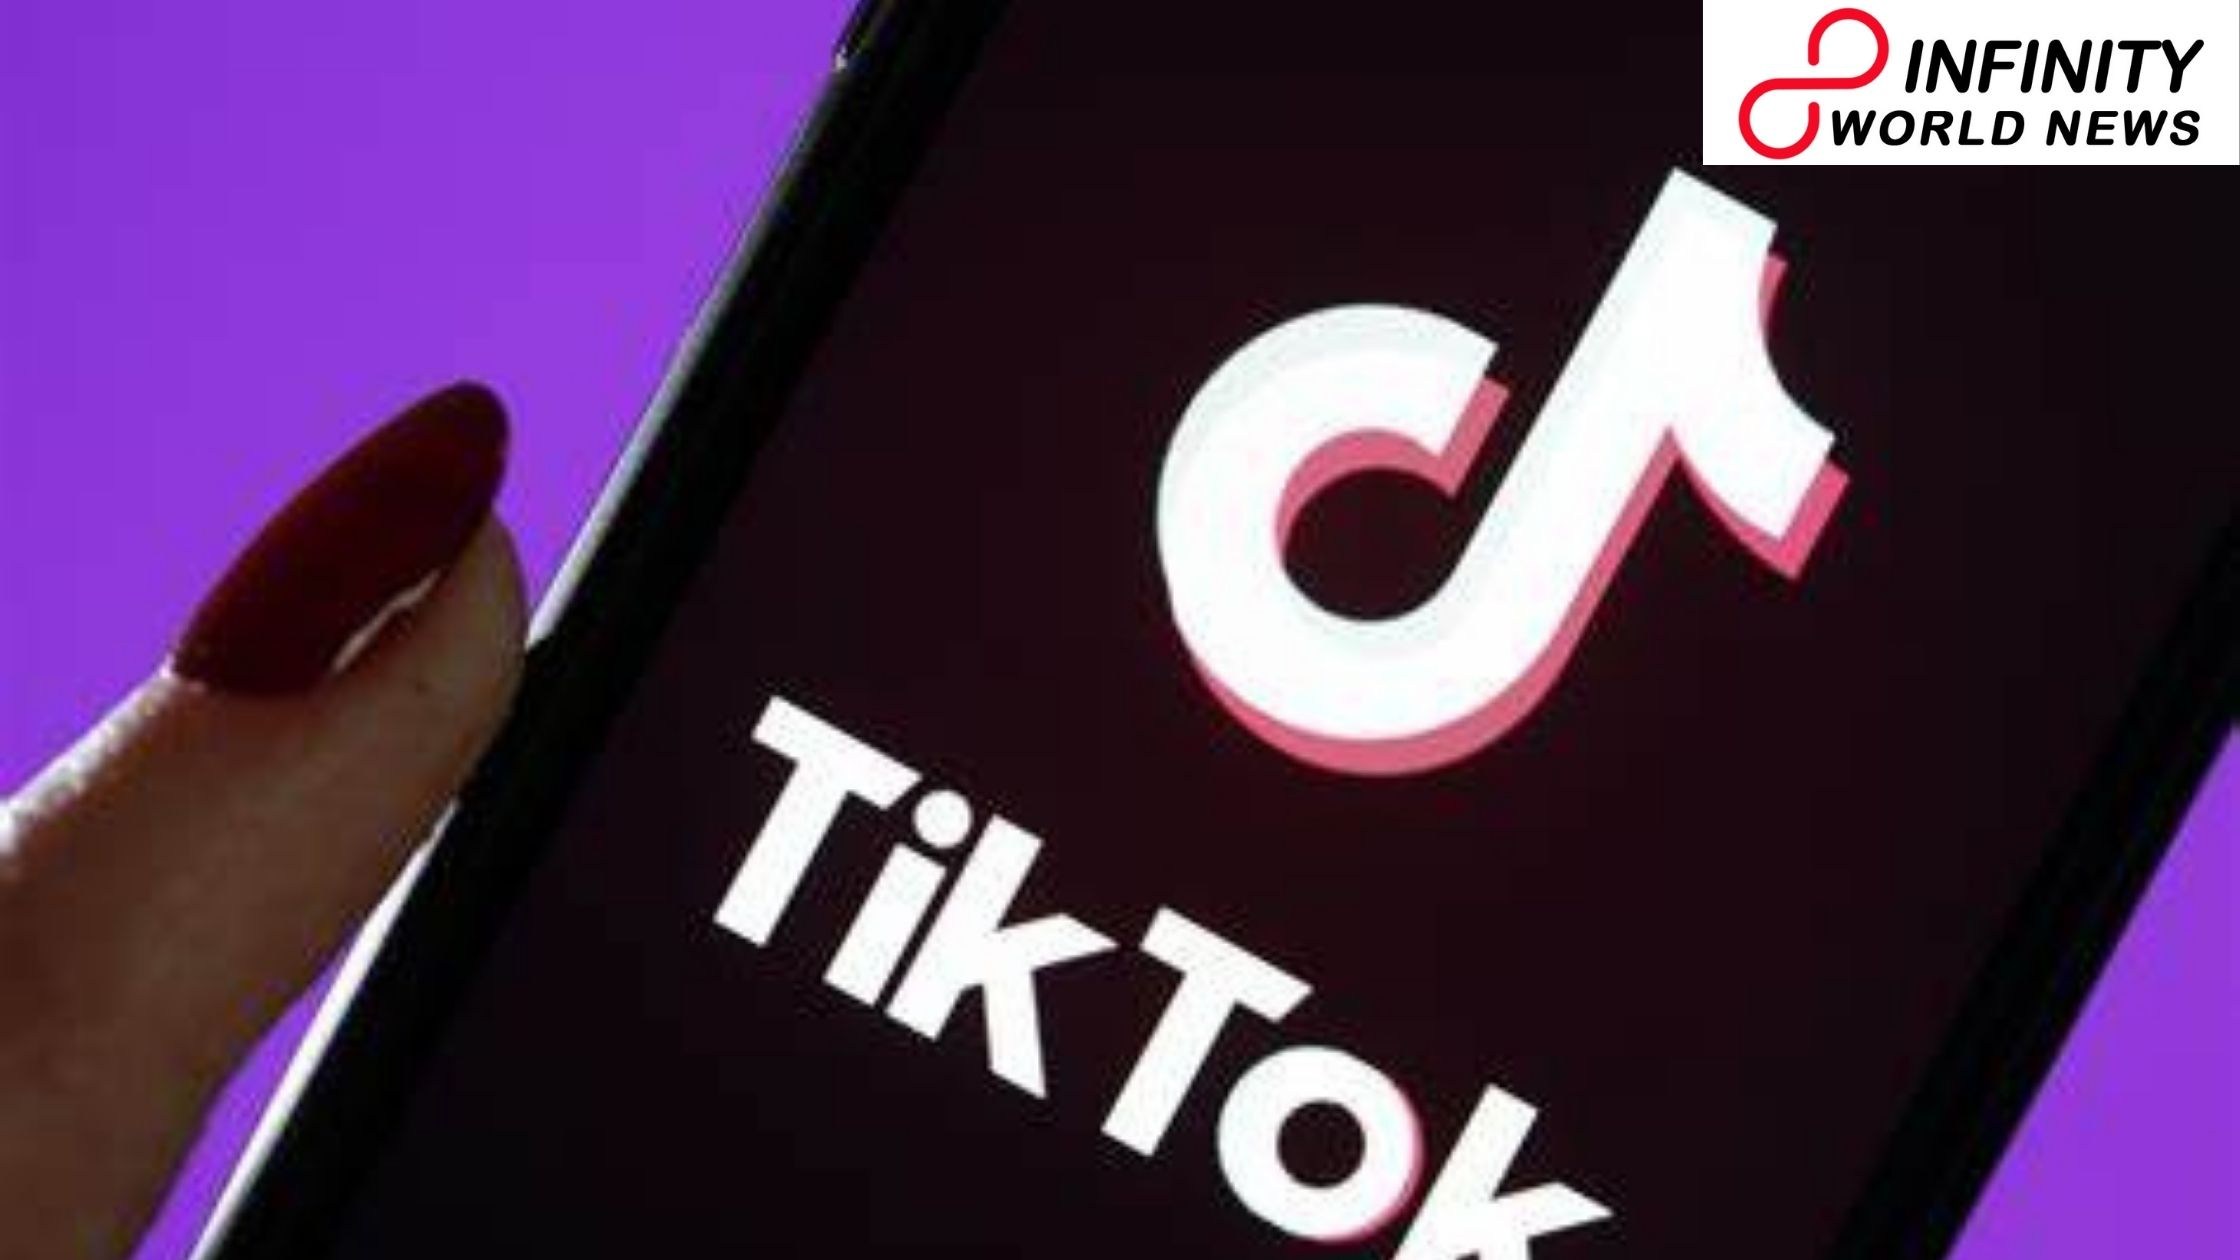 TikTok Proposes Social Media Coalition to Curb Toxic Content